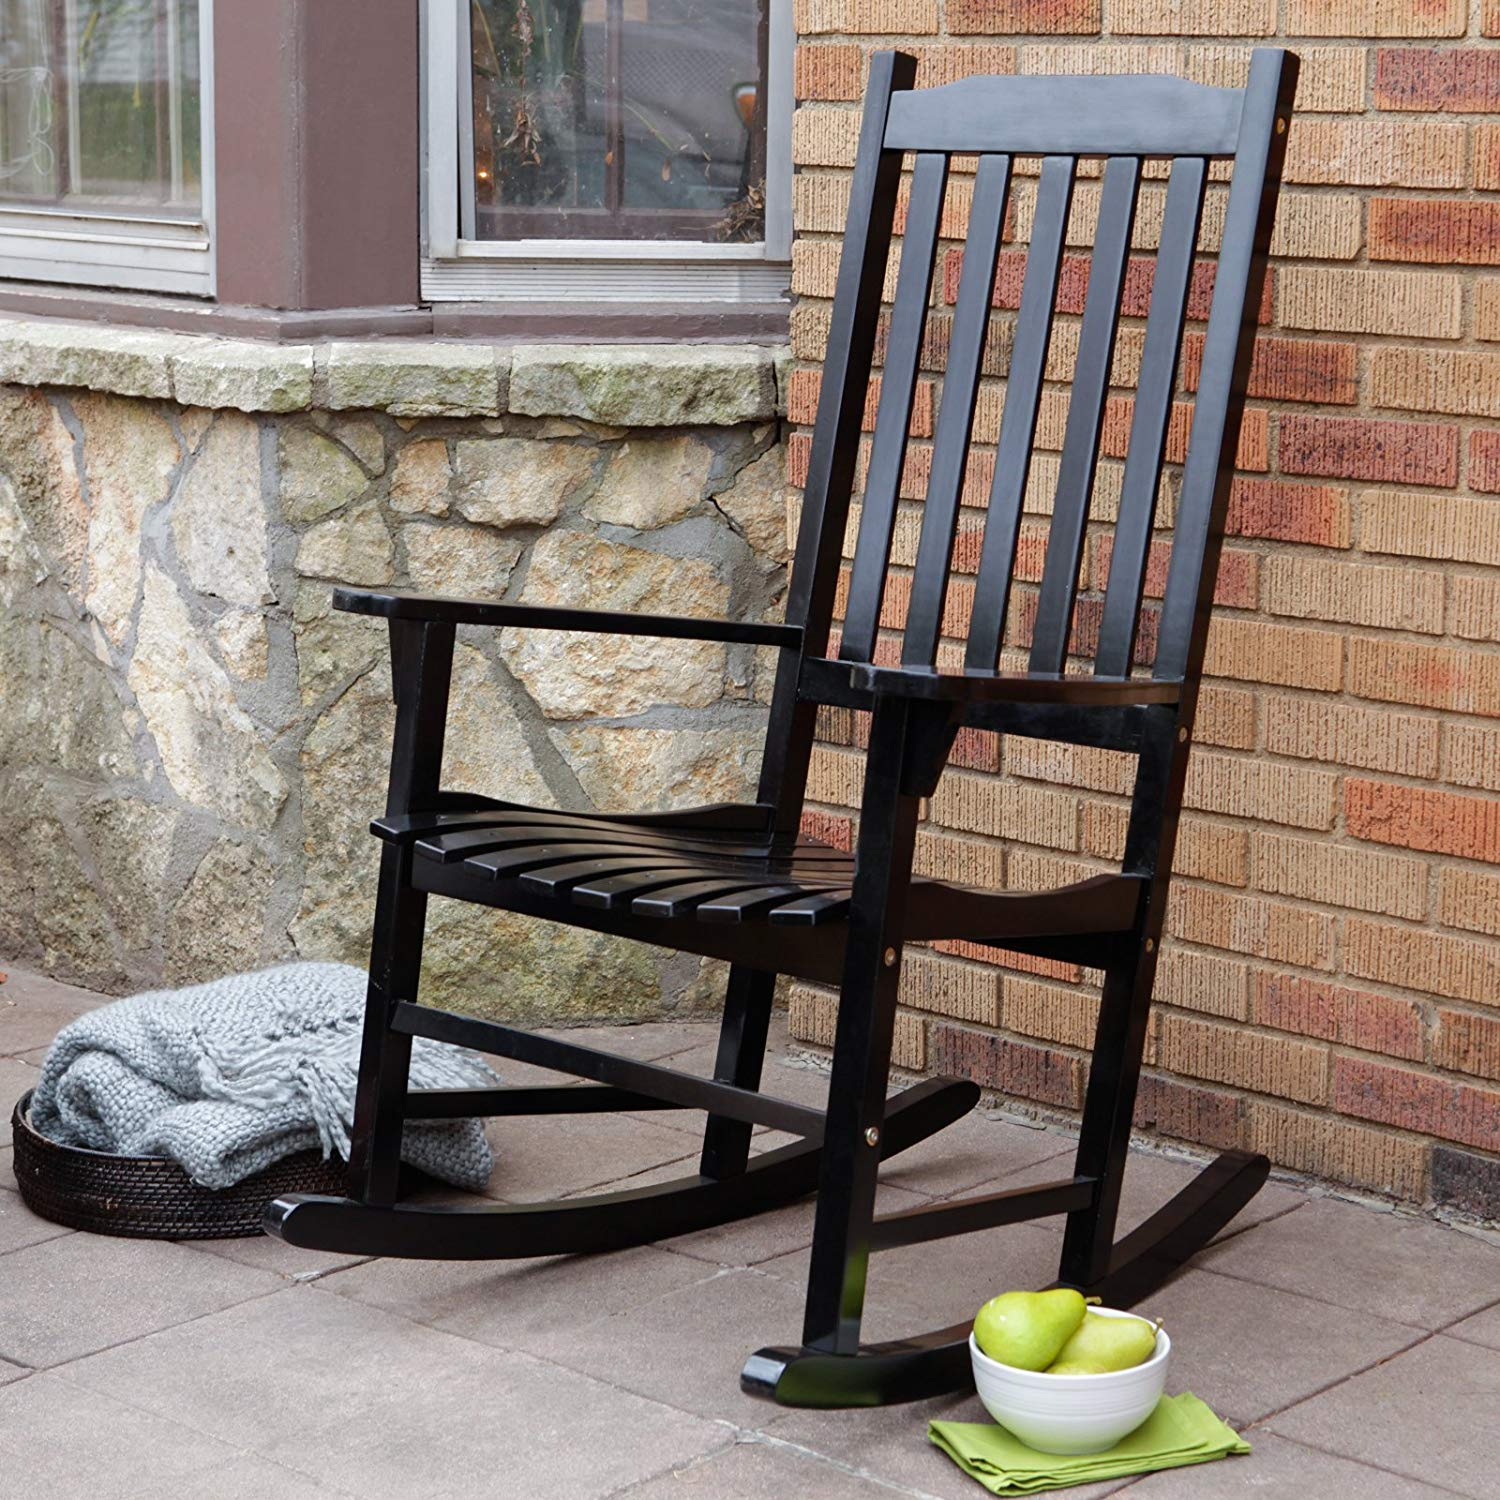 Get Quotations Care 4 Home Llc Outdoor Porch Rocking Chair Durable Construction All Weather Versatile